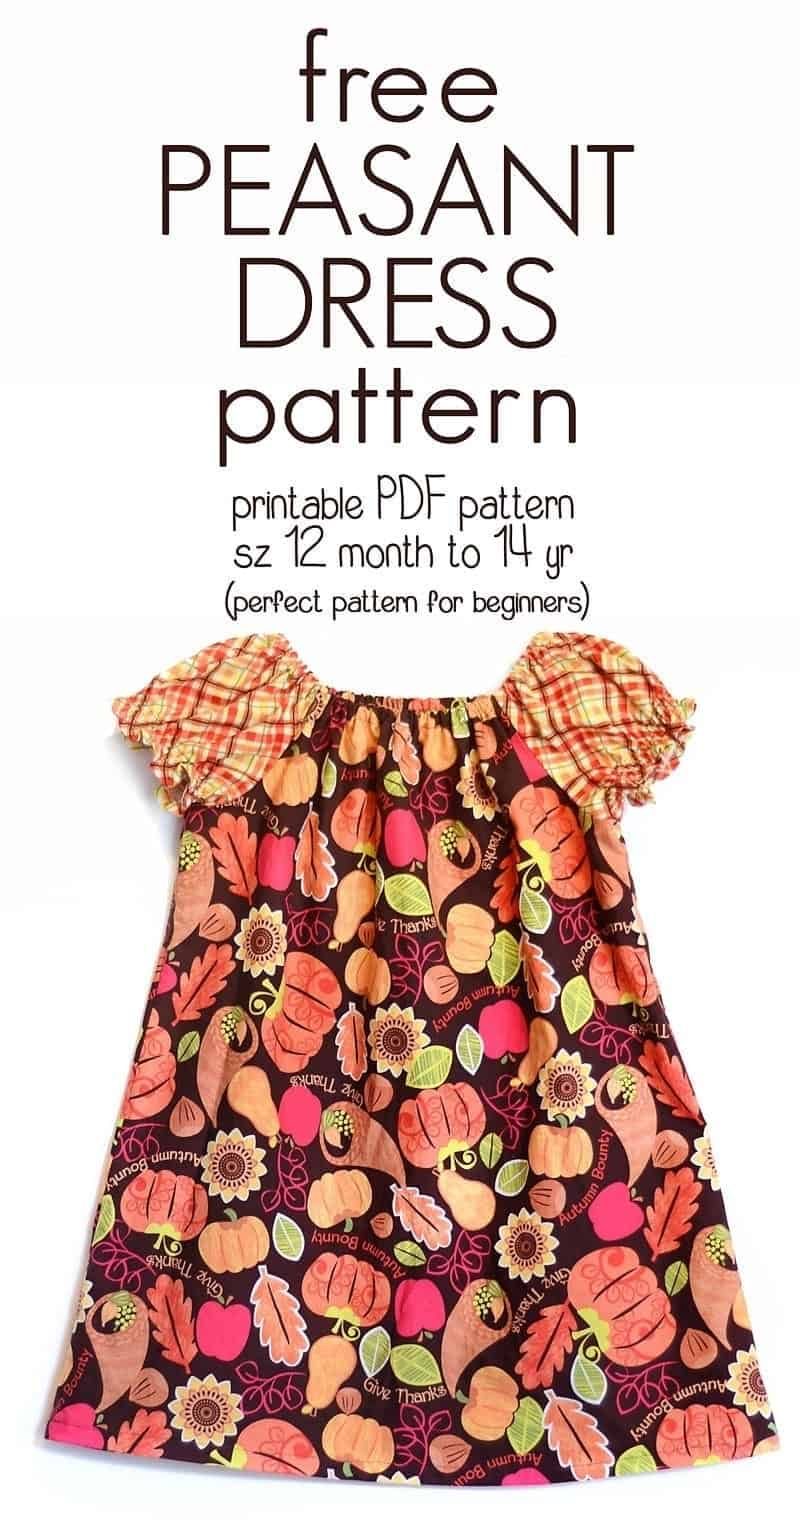 photograph relating to Free Printable Pillowcase Dress Pattern titled Find out how in the direction of Sew a Peasant Costume with this cost-free Peasant